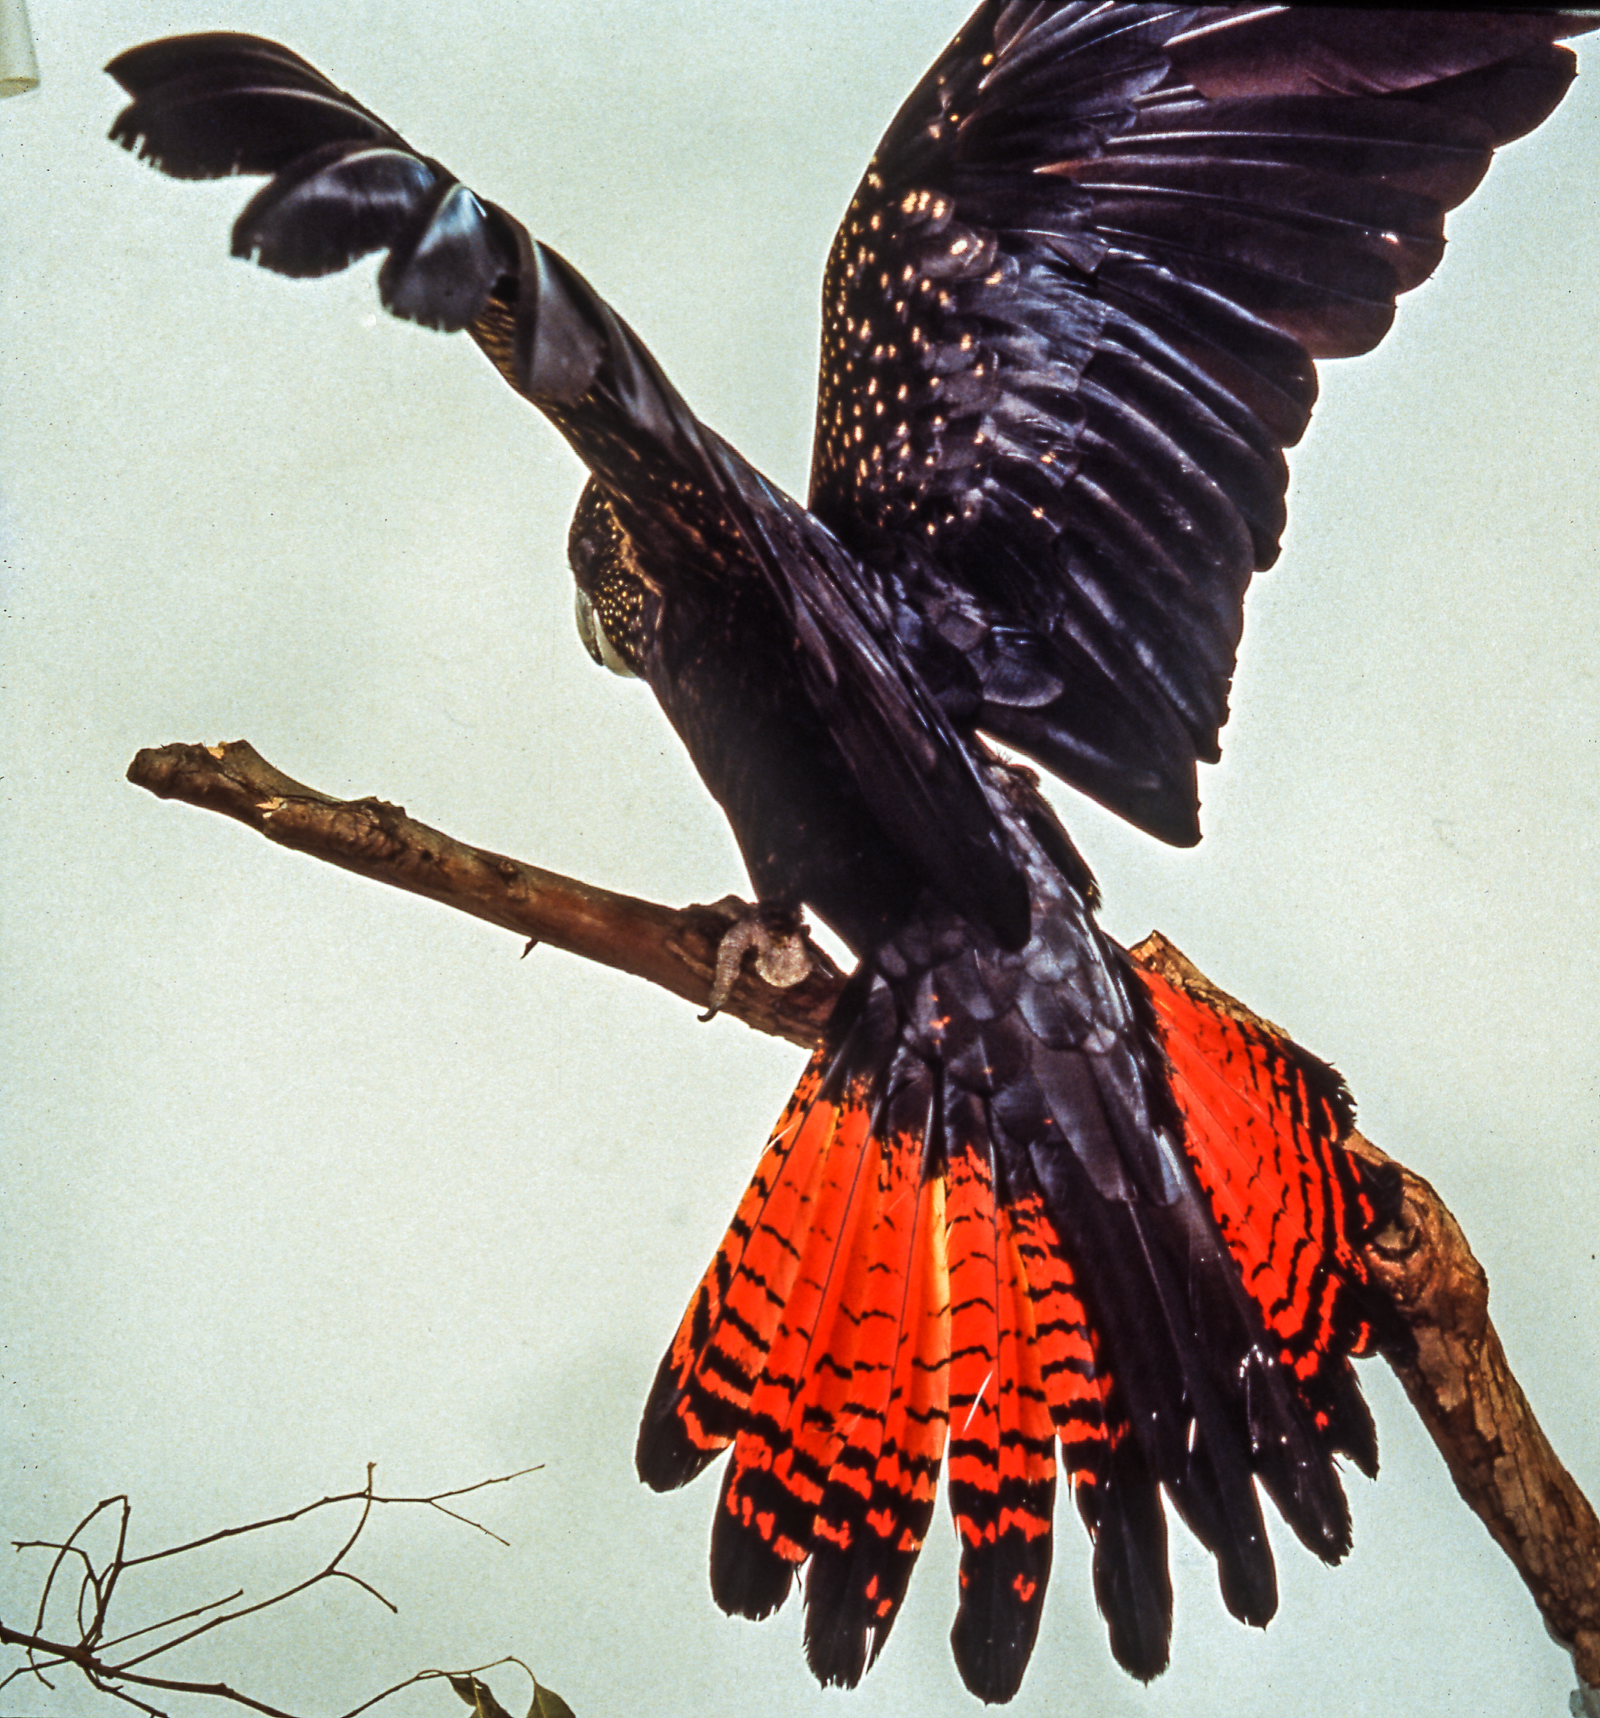 Red-tailed Black Cockatoo on a tree